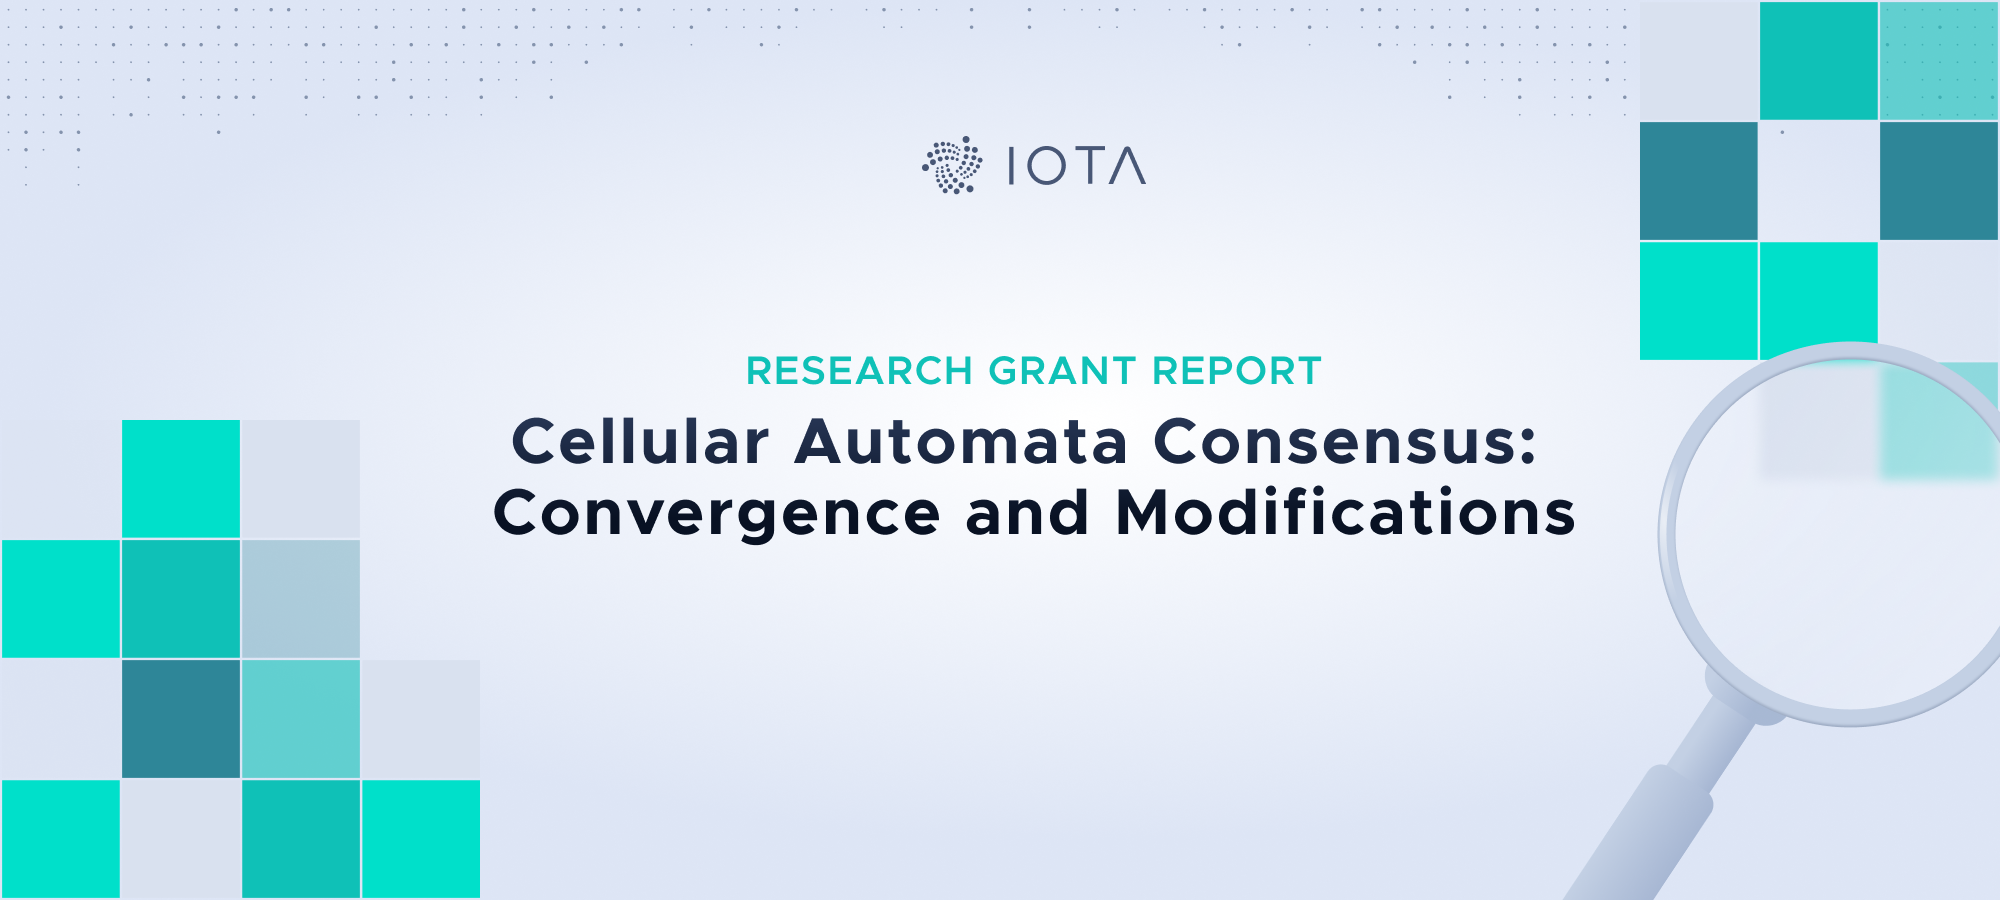 Research Grant Report — Cellular Automata Consensus: Convergence and Modifications